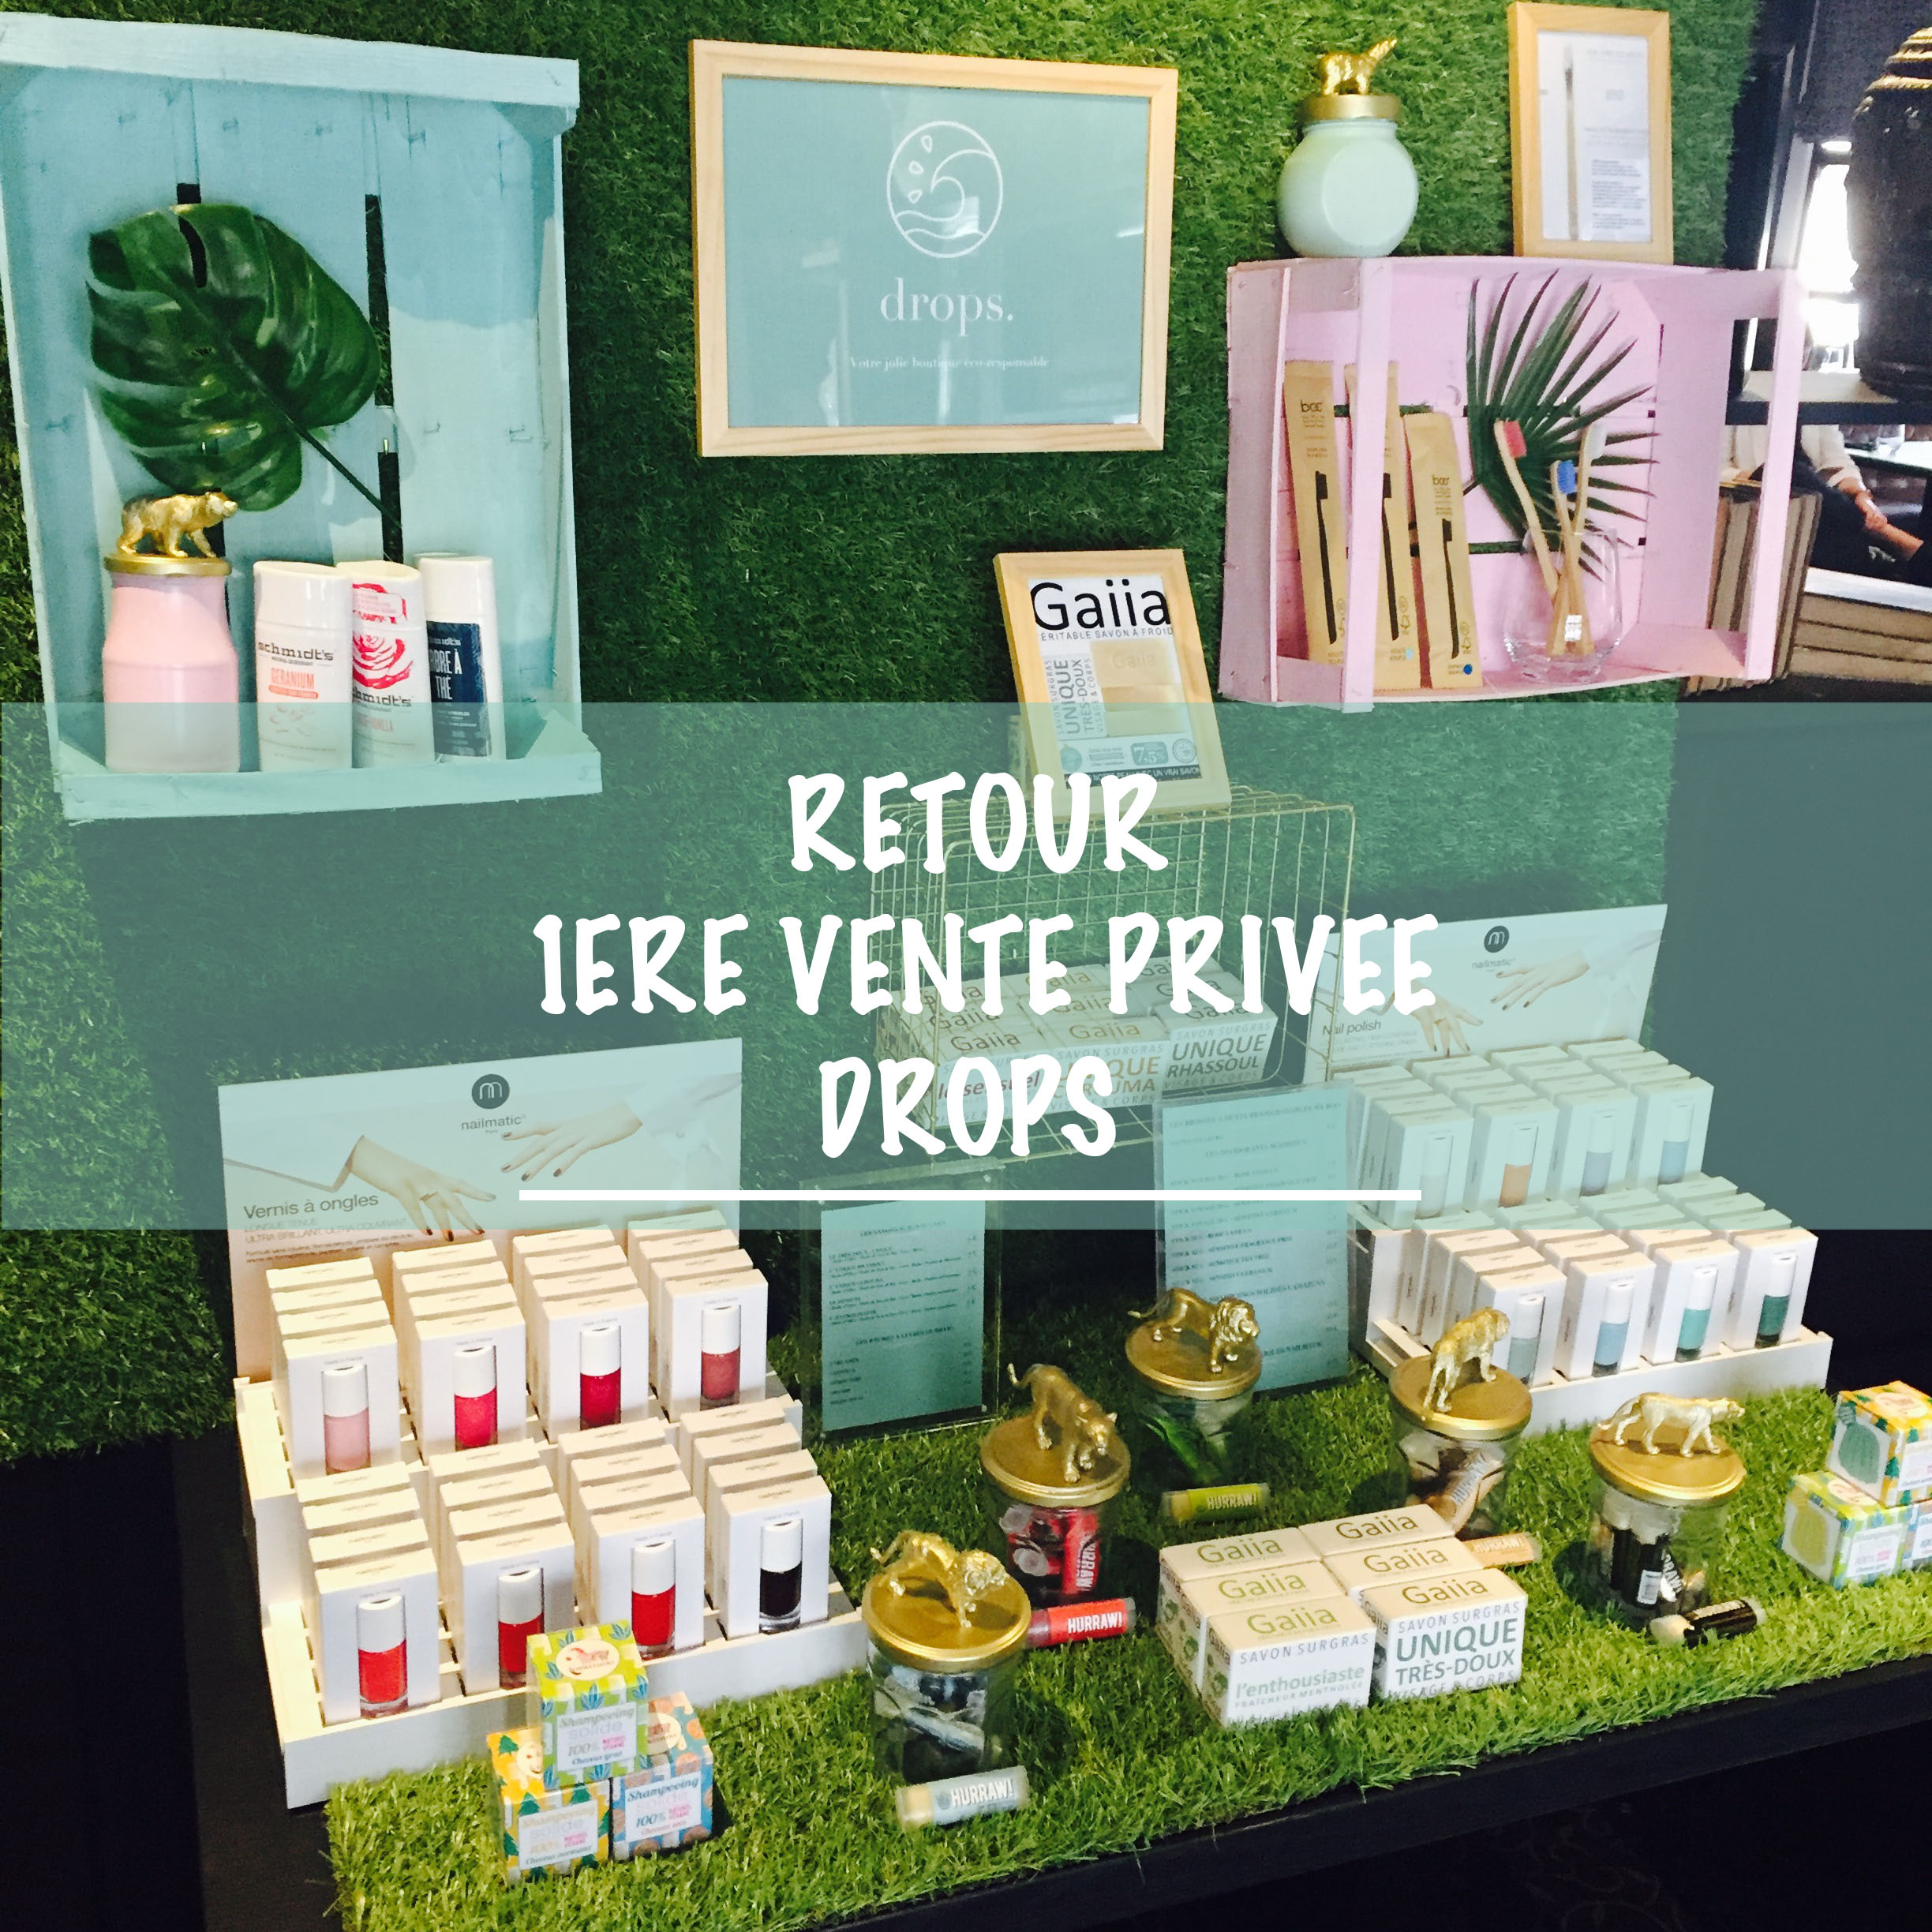 Vente Privee Decoration Retour Sur La 1ère Vente Privée Drops La Boutique Le Blog